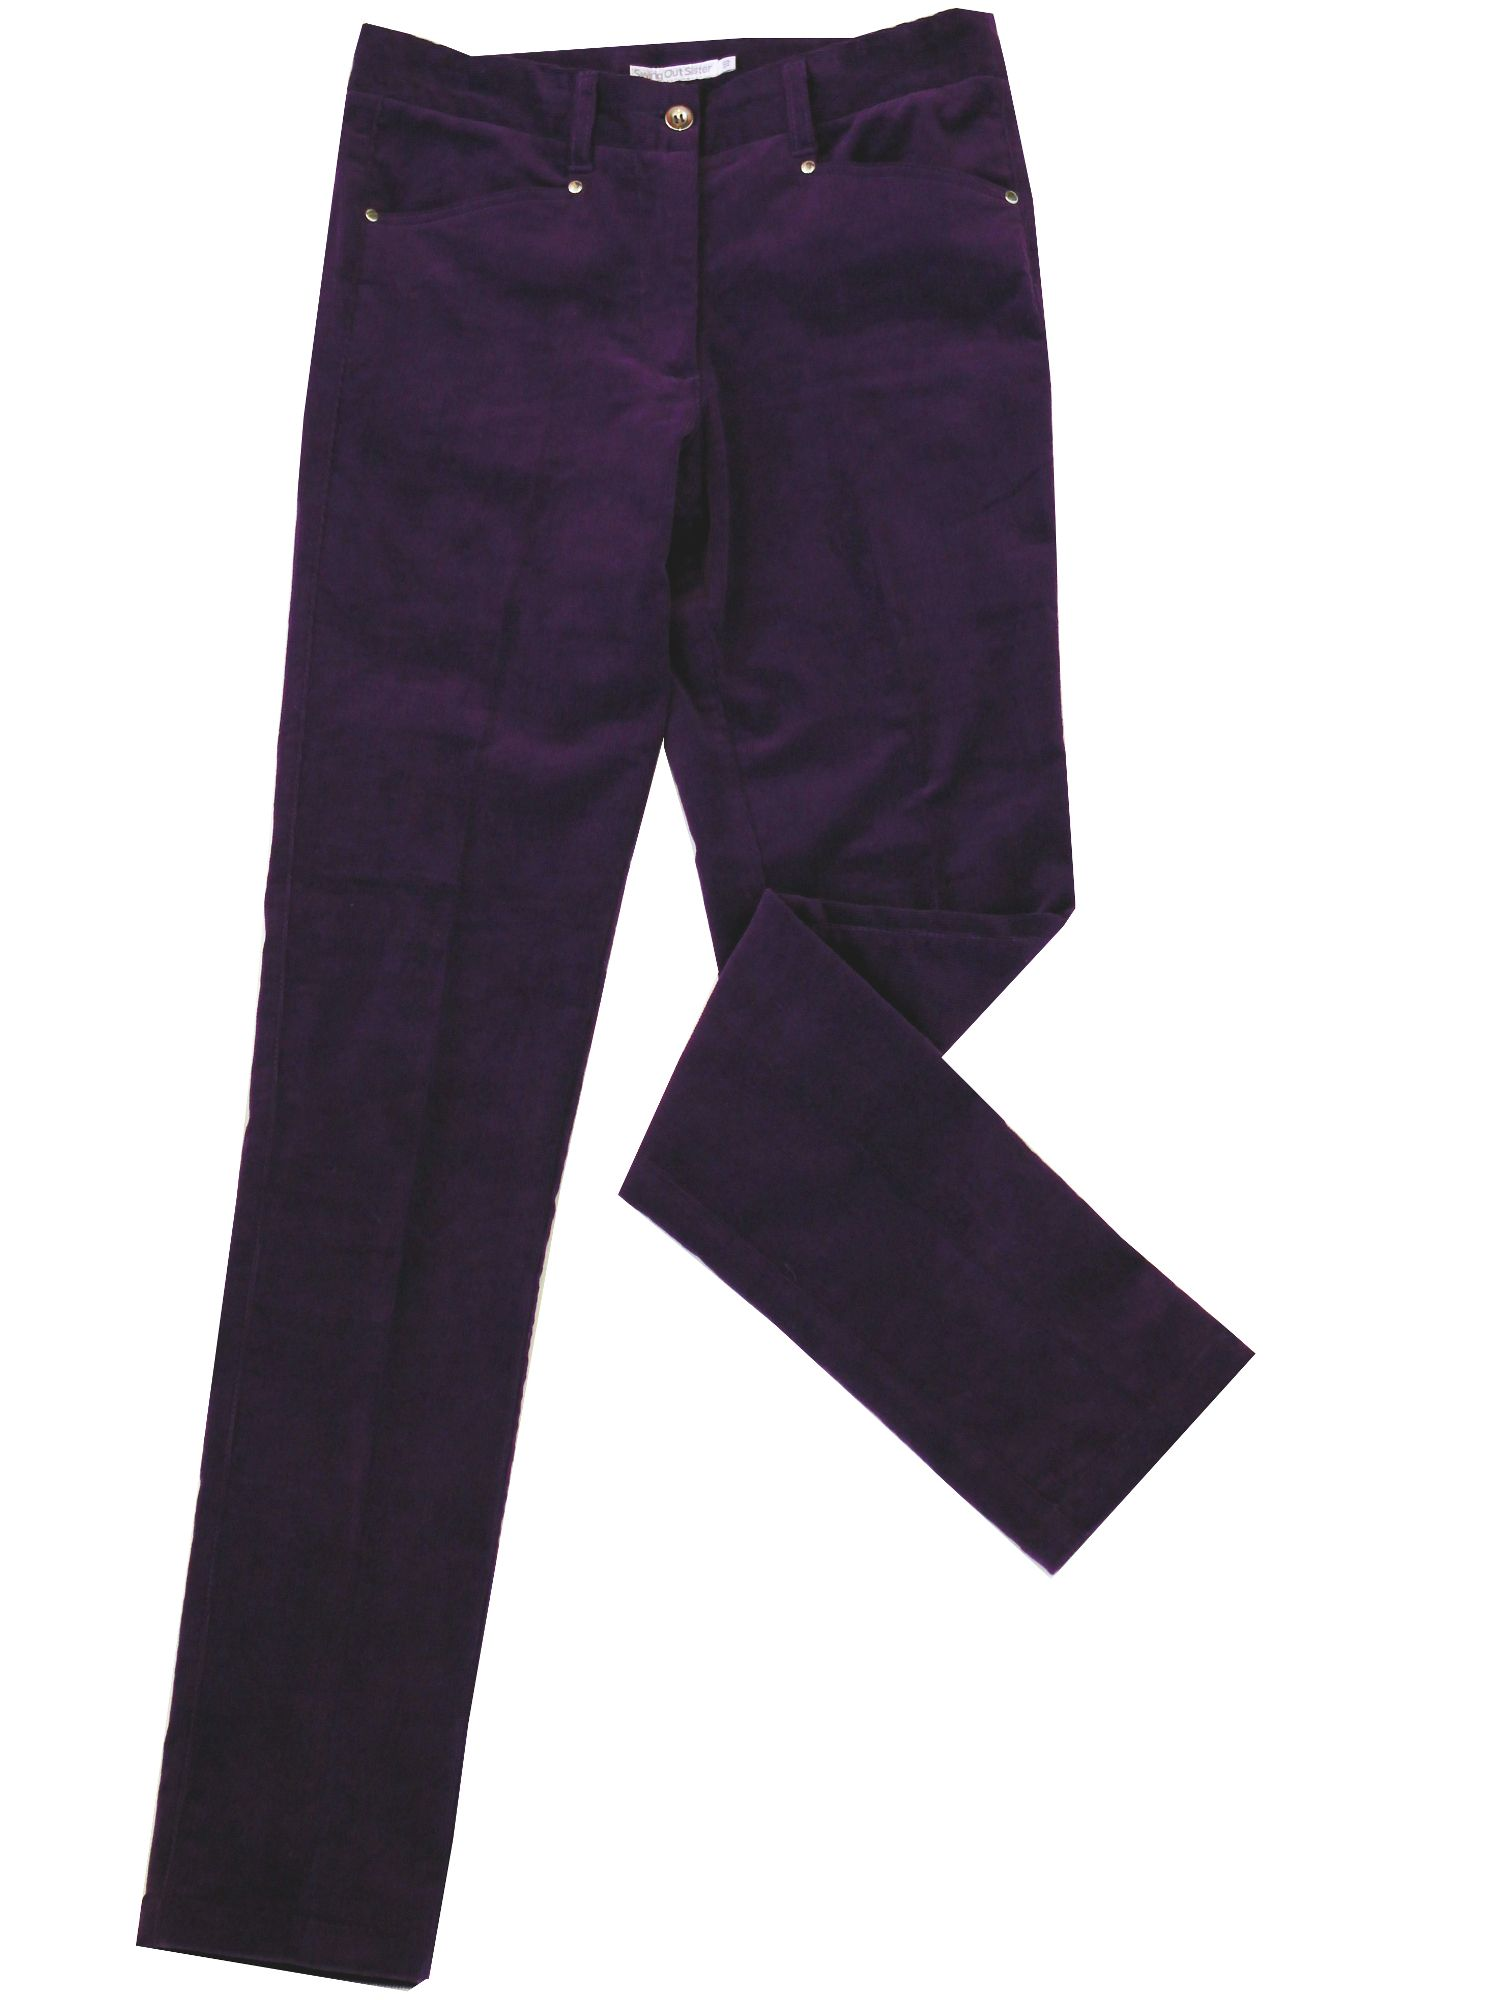 Swing Out Sister Swing Out Sister Clarity Cords, Purple